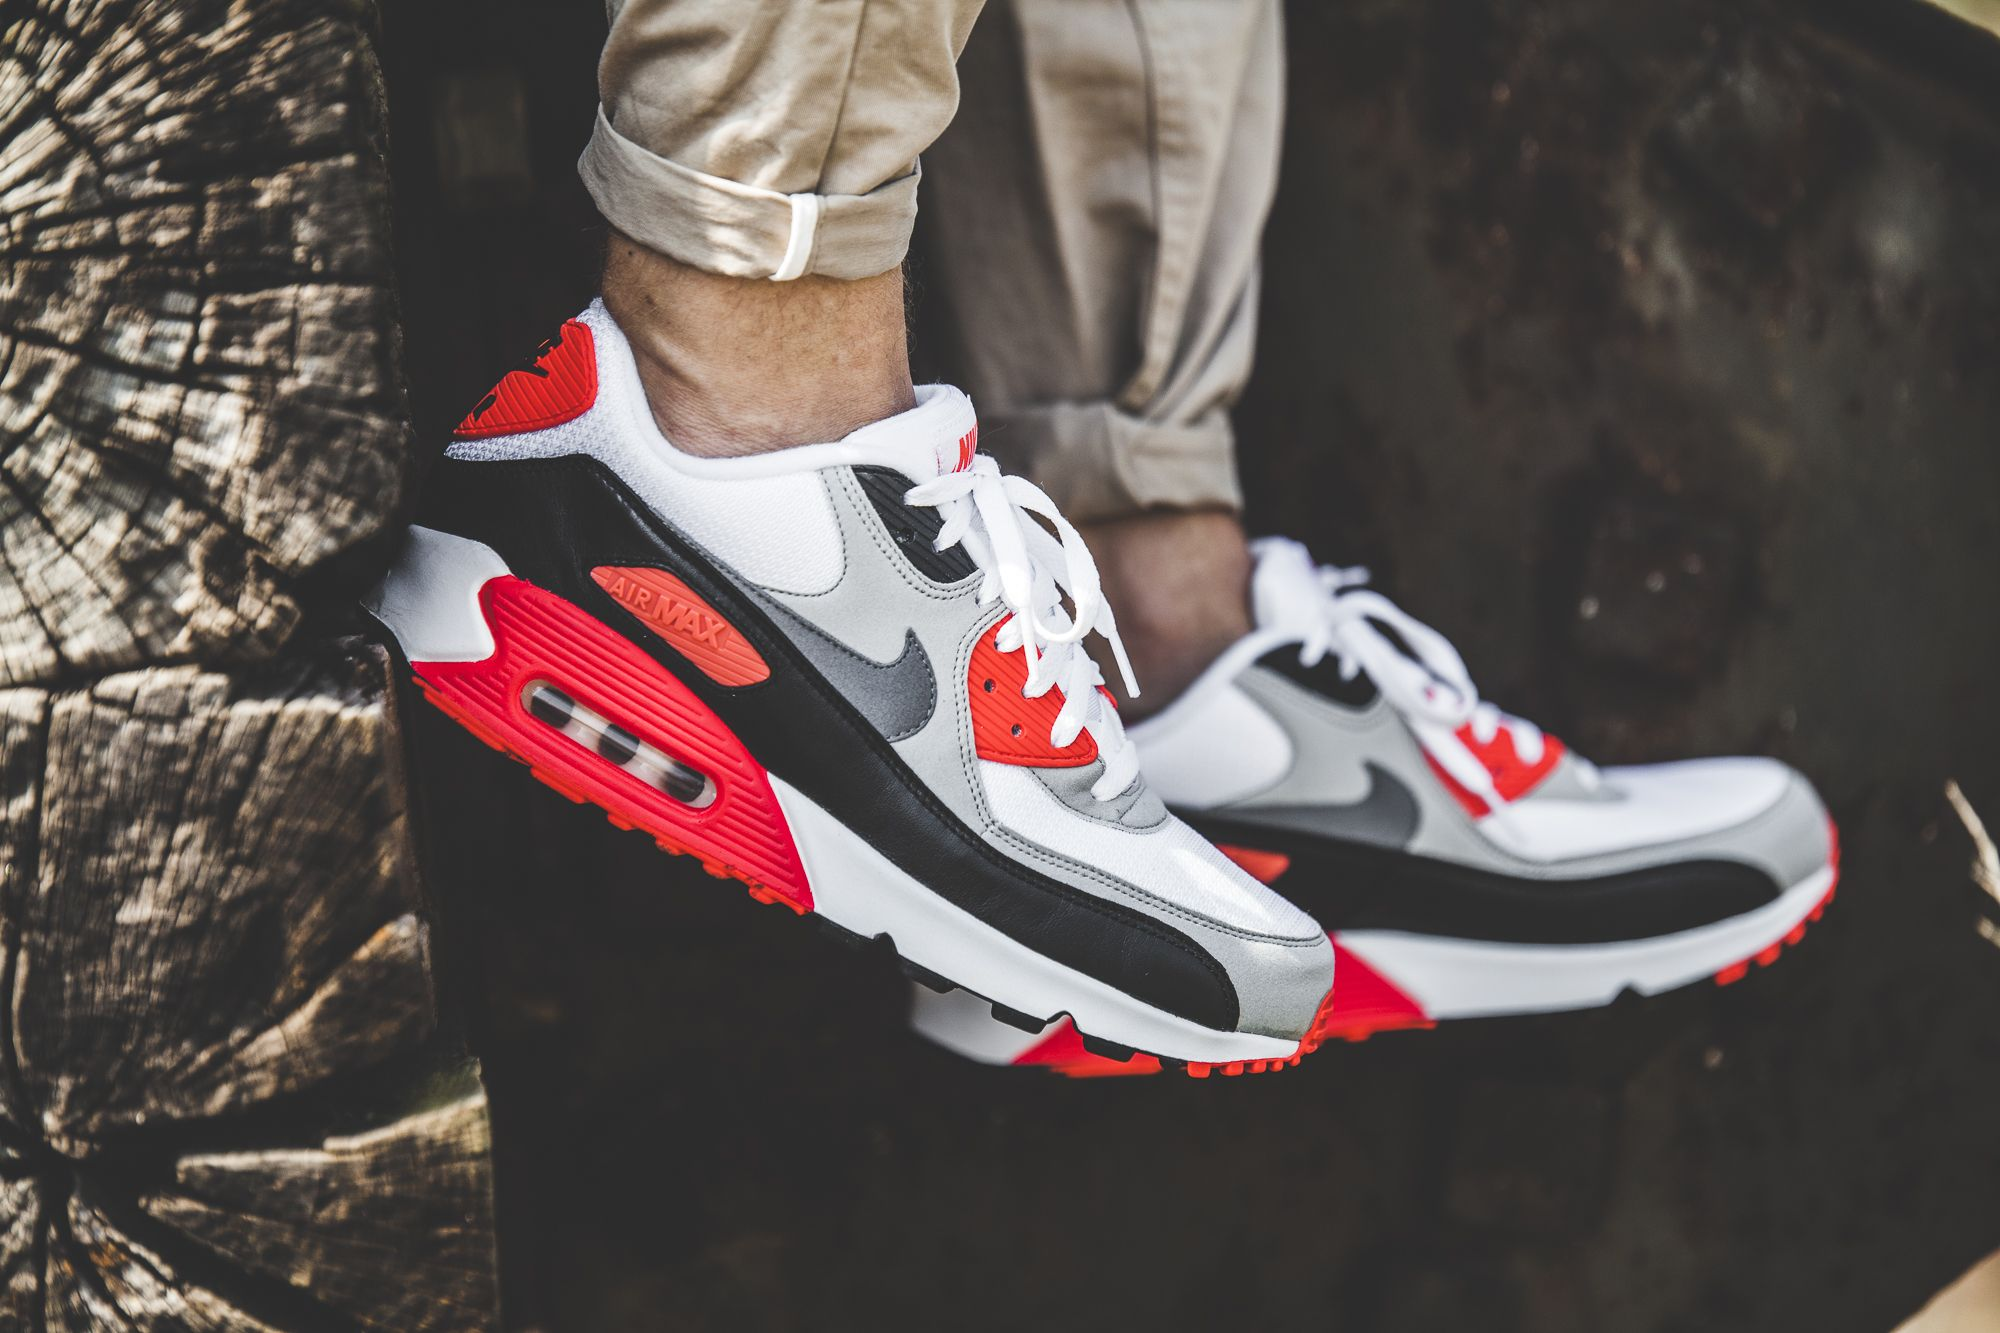 new arrival bb790 5eb70 The Nike Air Max 90 OG